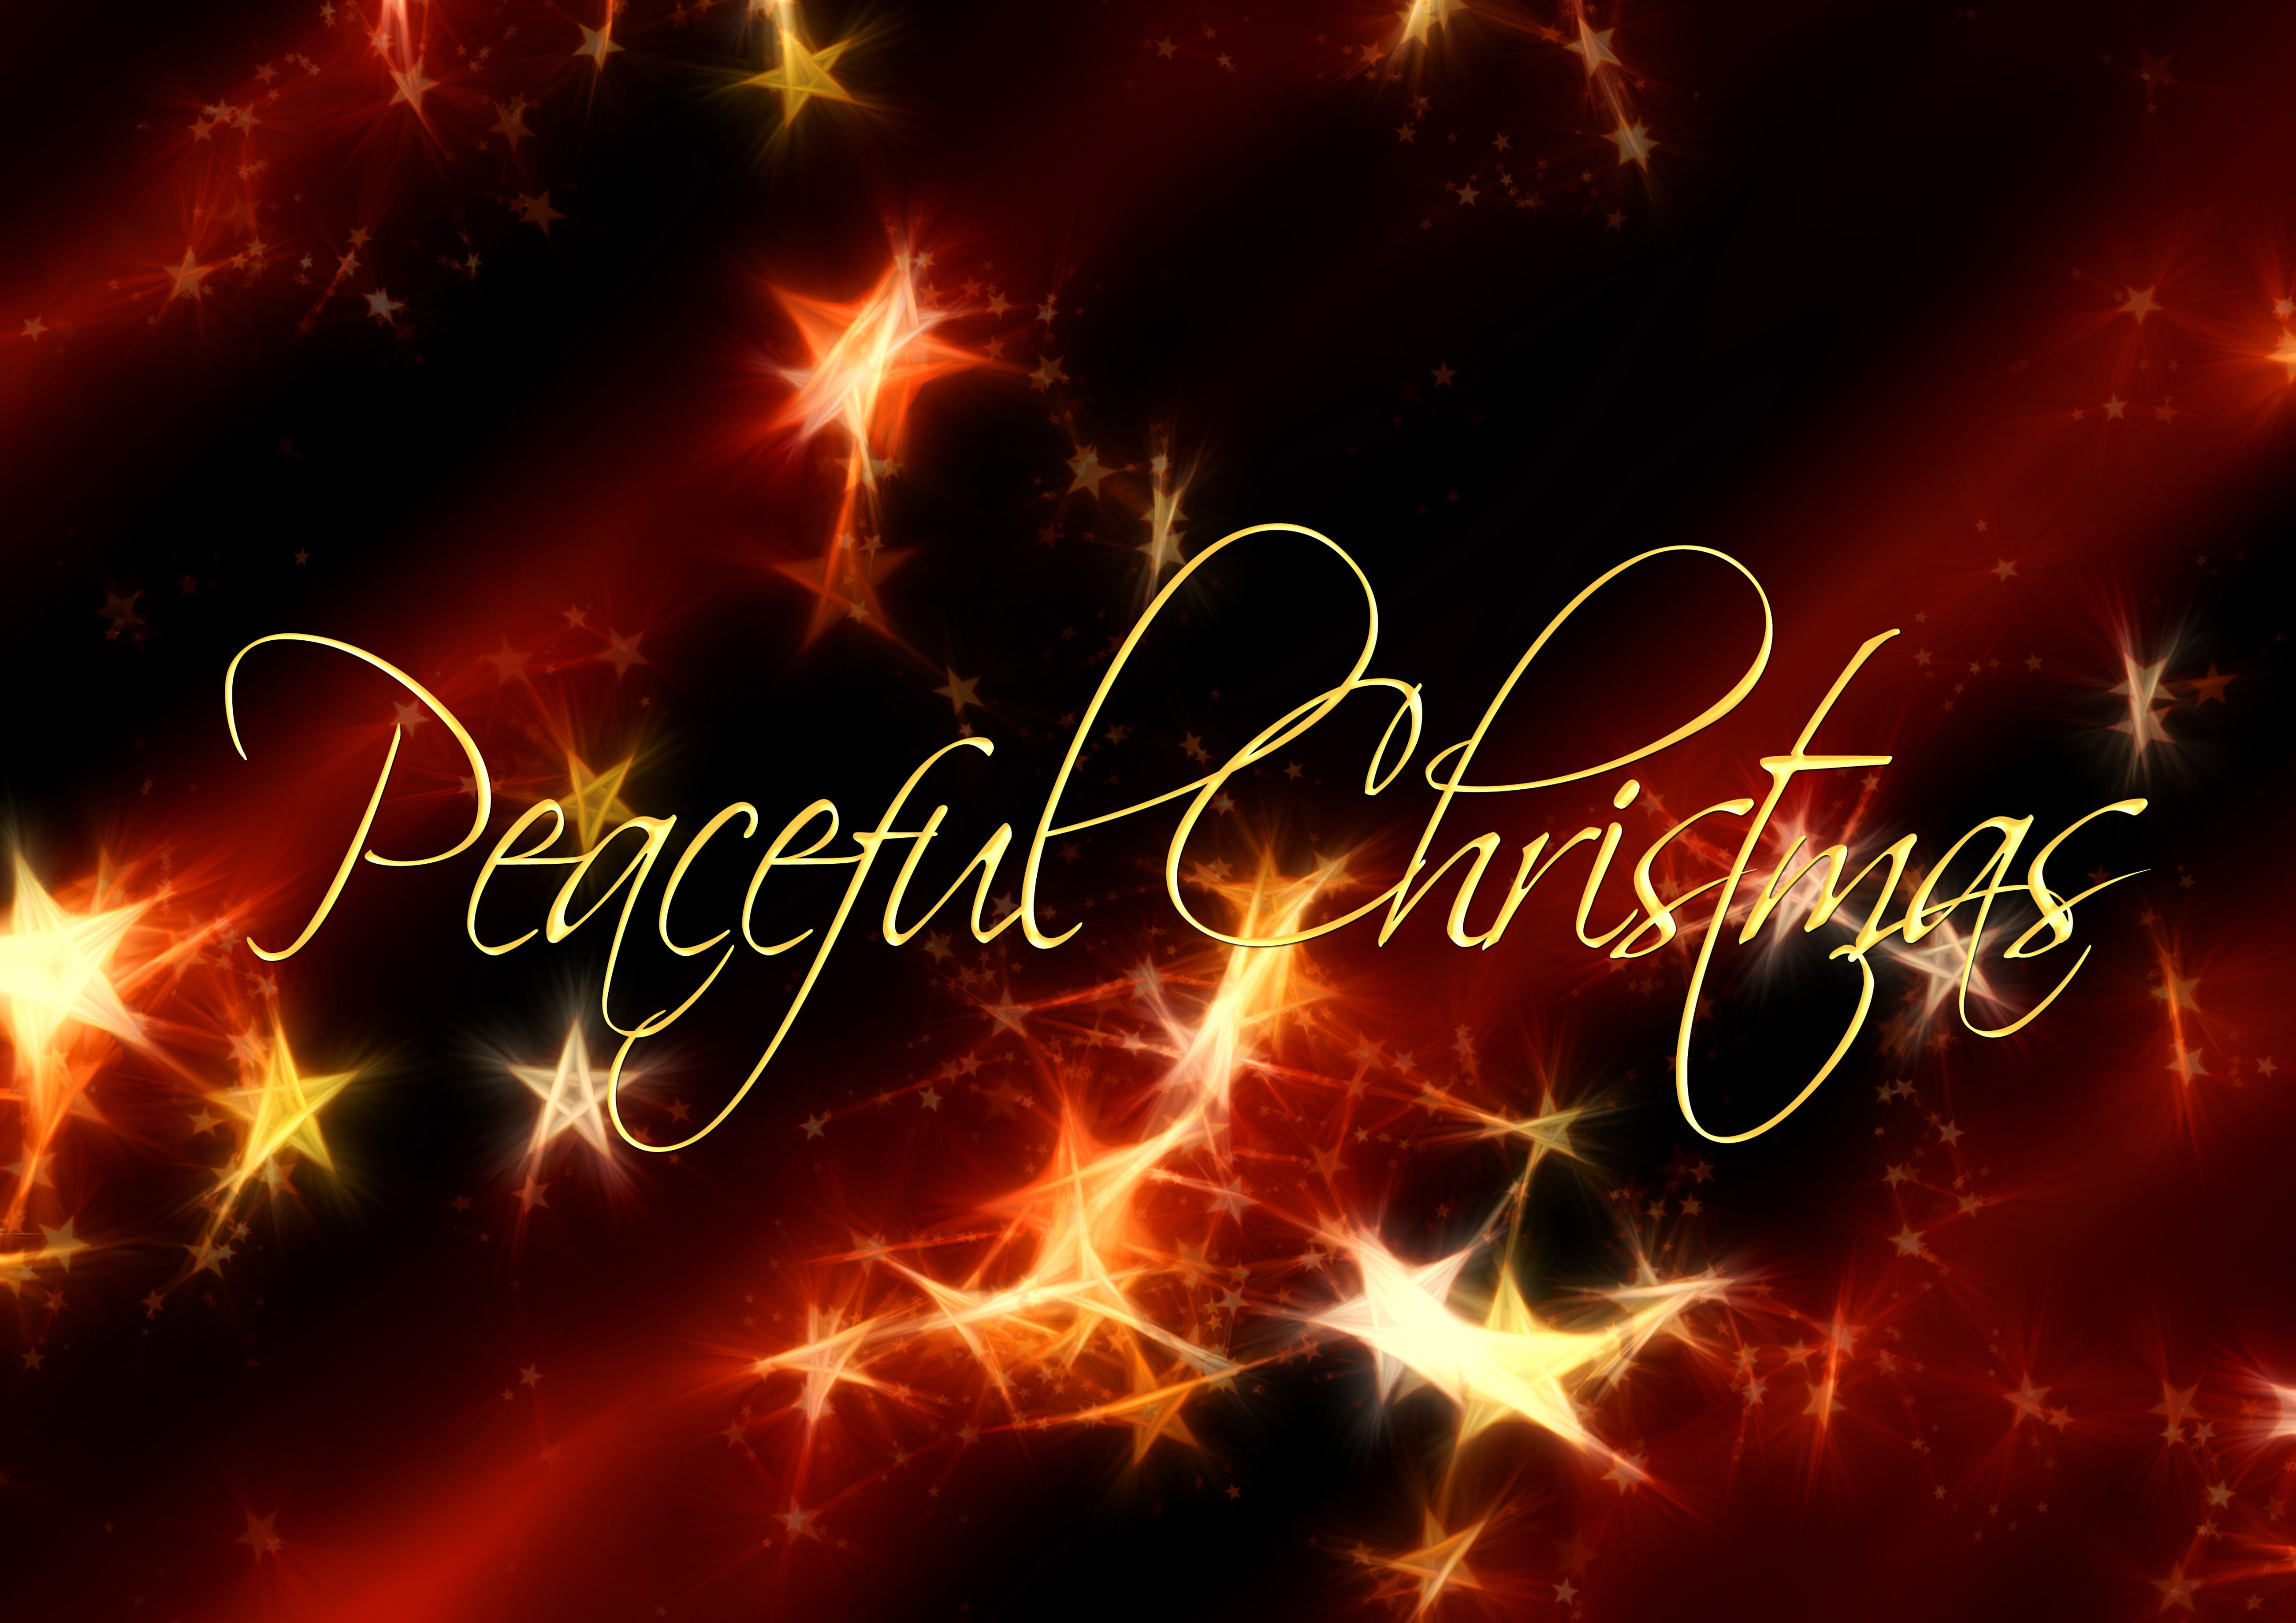 peaceful christmas wallpaper background image 5209x3683